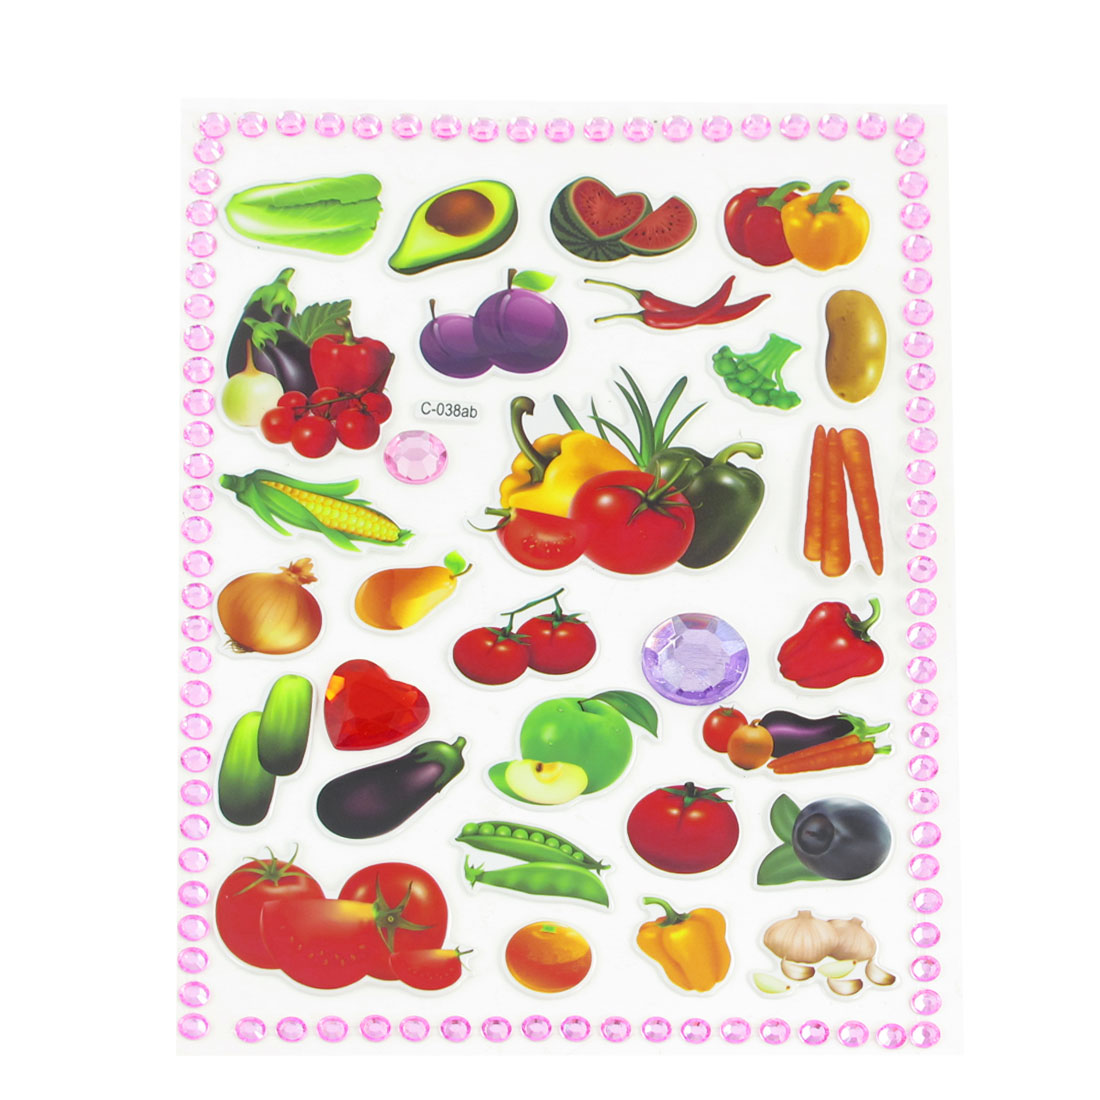 Kid Multicolored Watermelon Potato Onion Craft Scrapbook Stickers